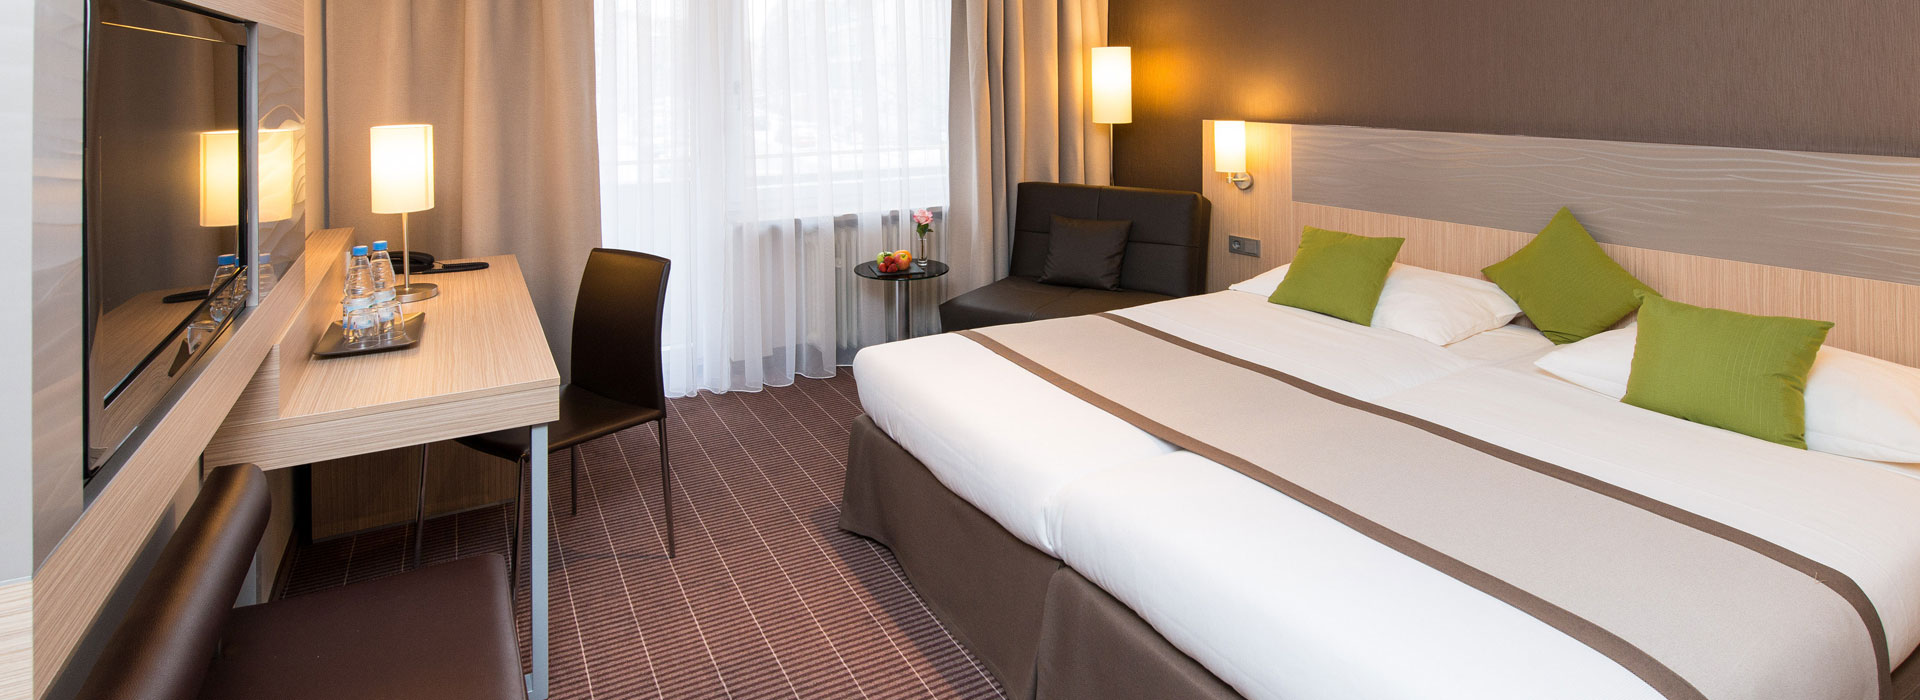 Hotel Orly Room